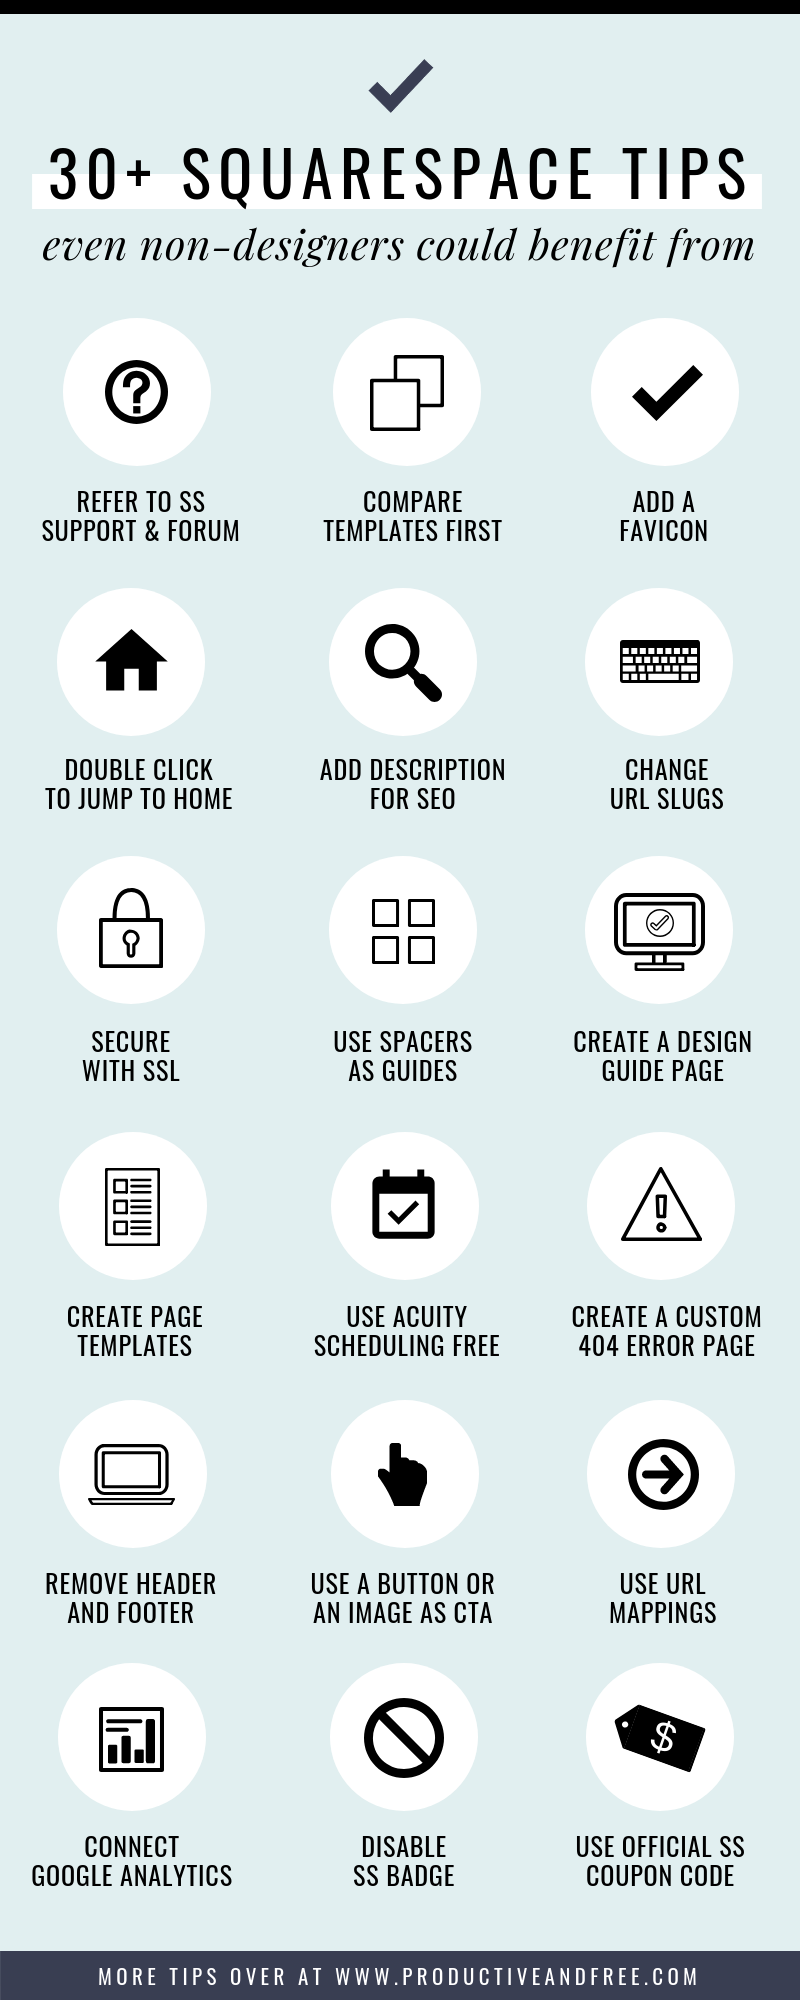 30+ Squarespace Tips and Tricks Even Non-Designers Could Benefit From | ProductiveandFree.com